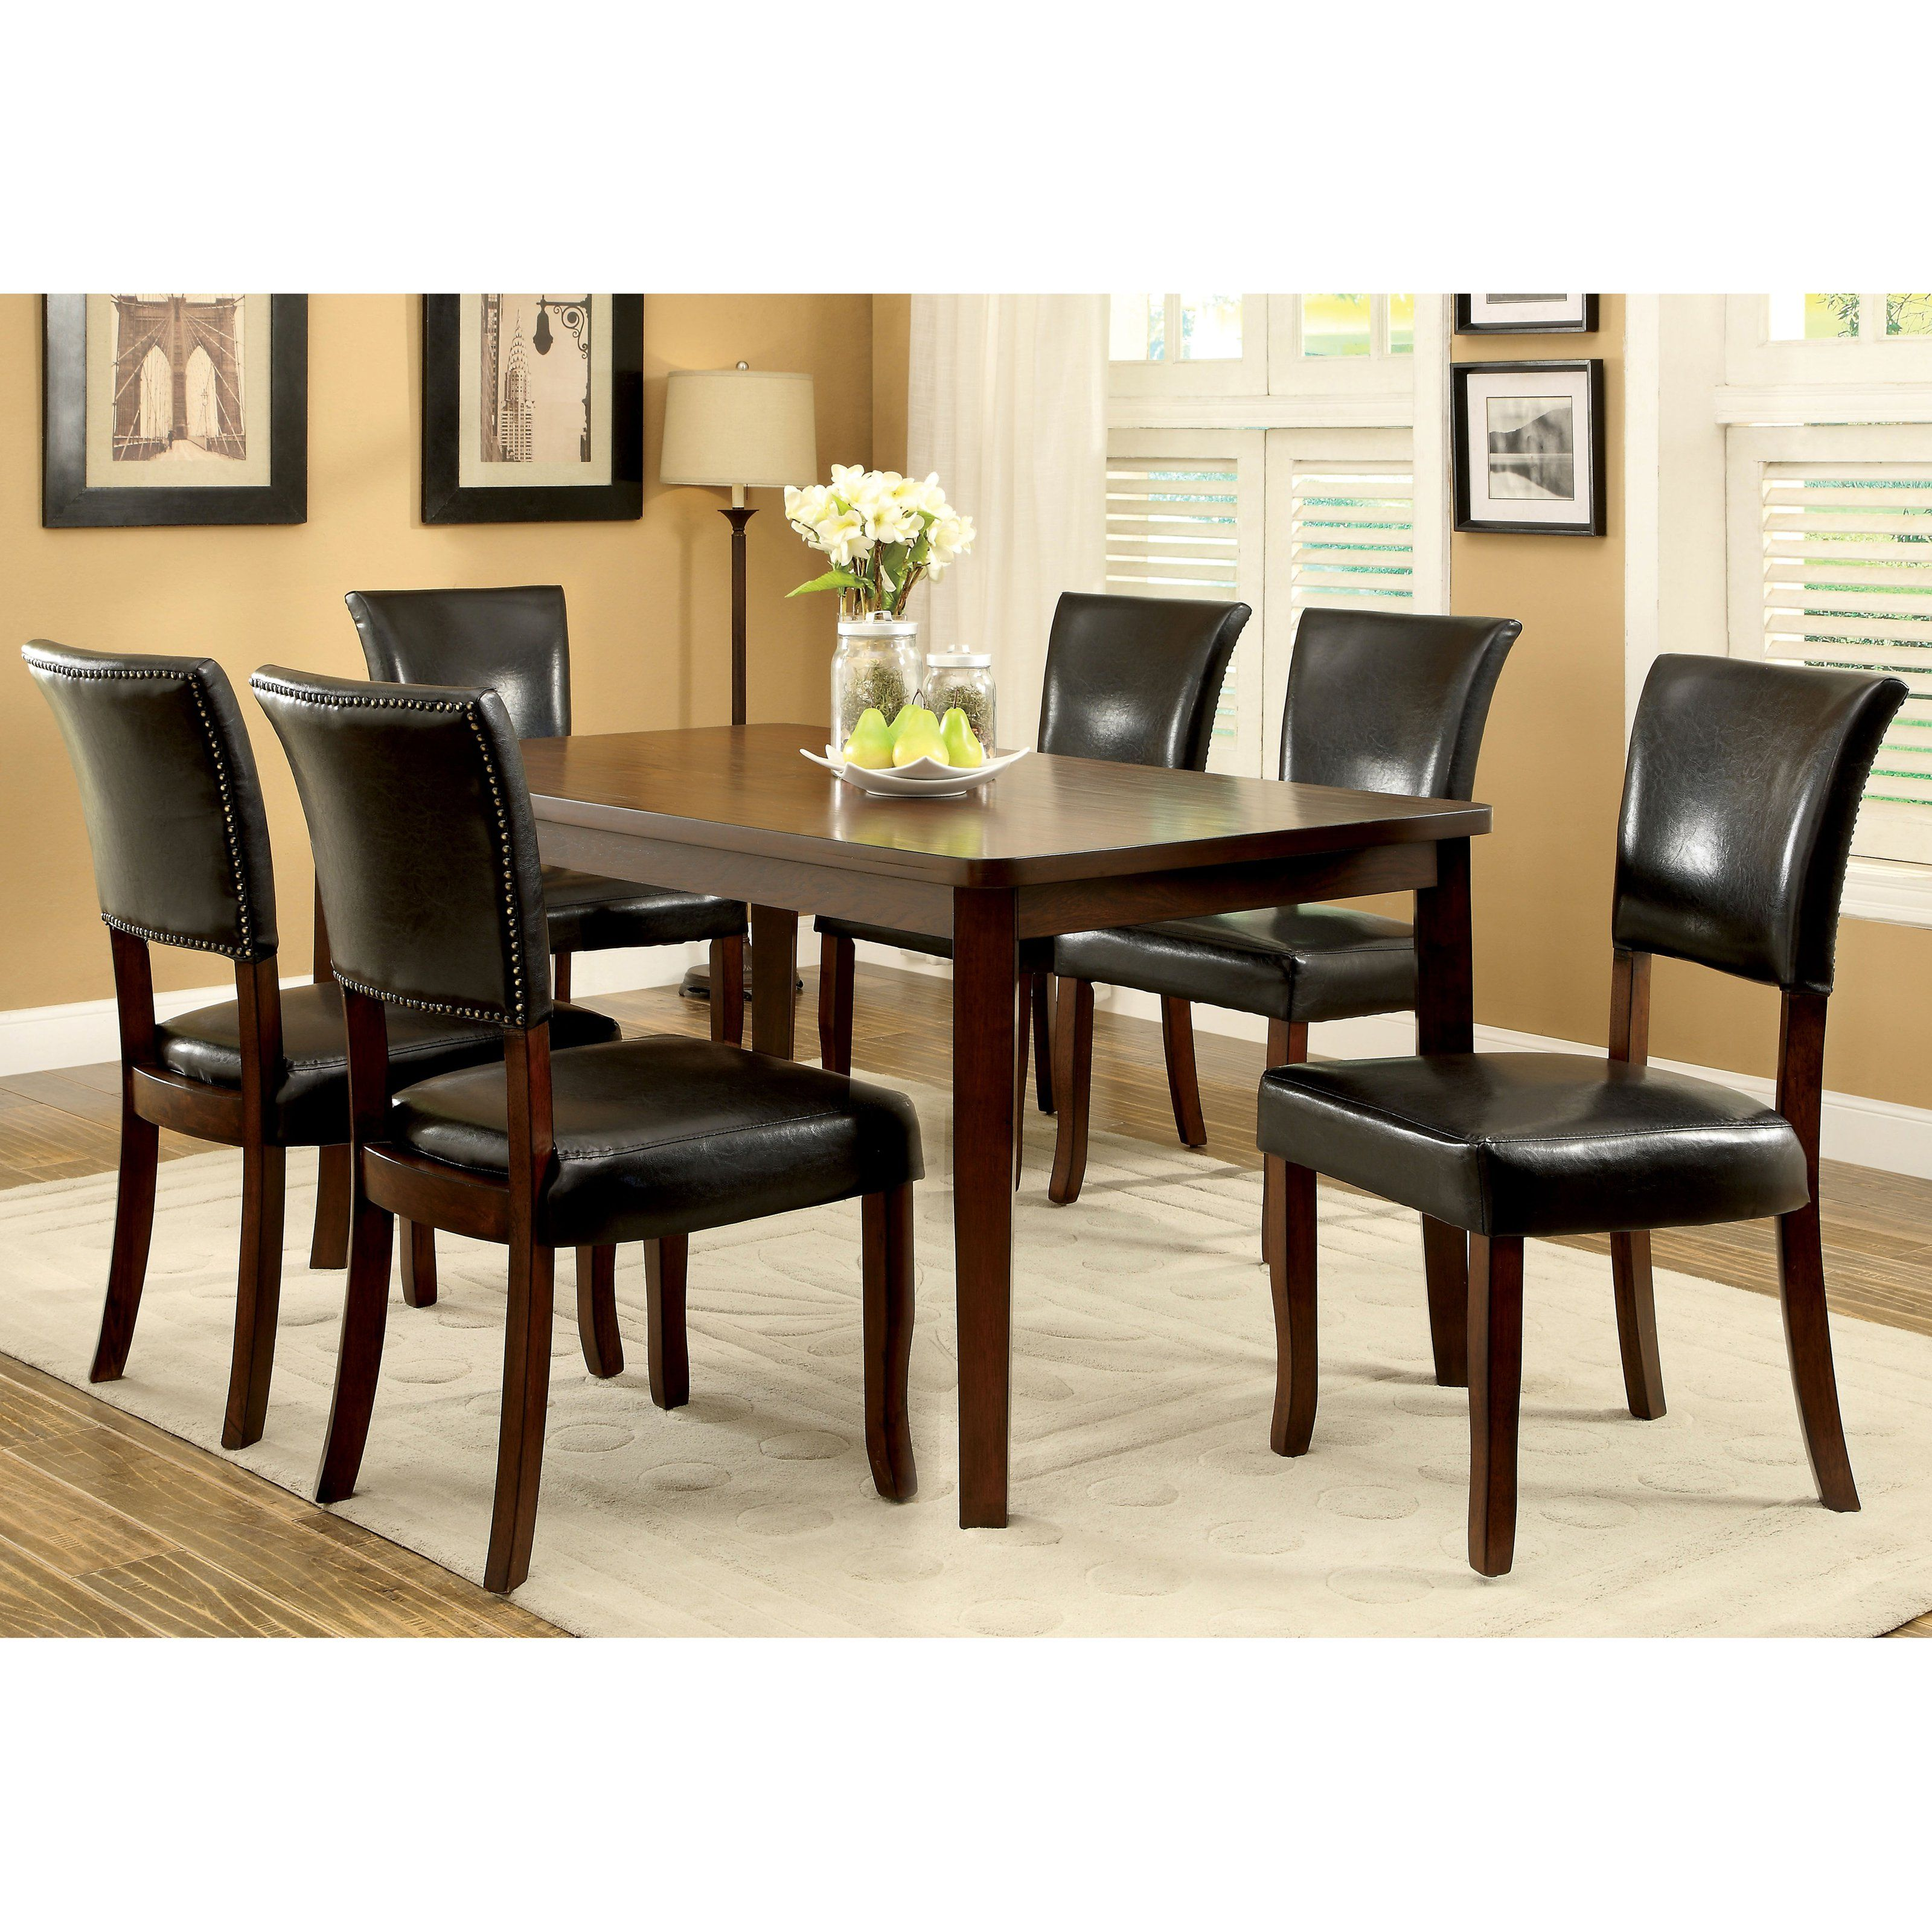 Furniture of America Claxton 7 Piece Dining Table Set with